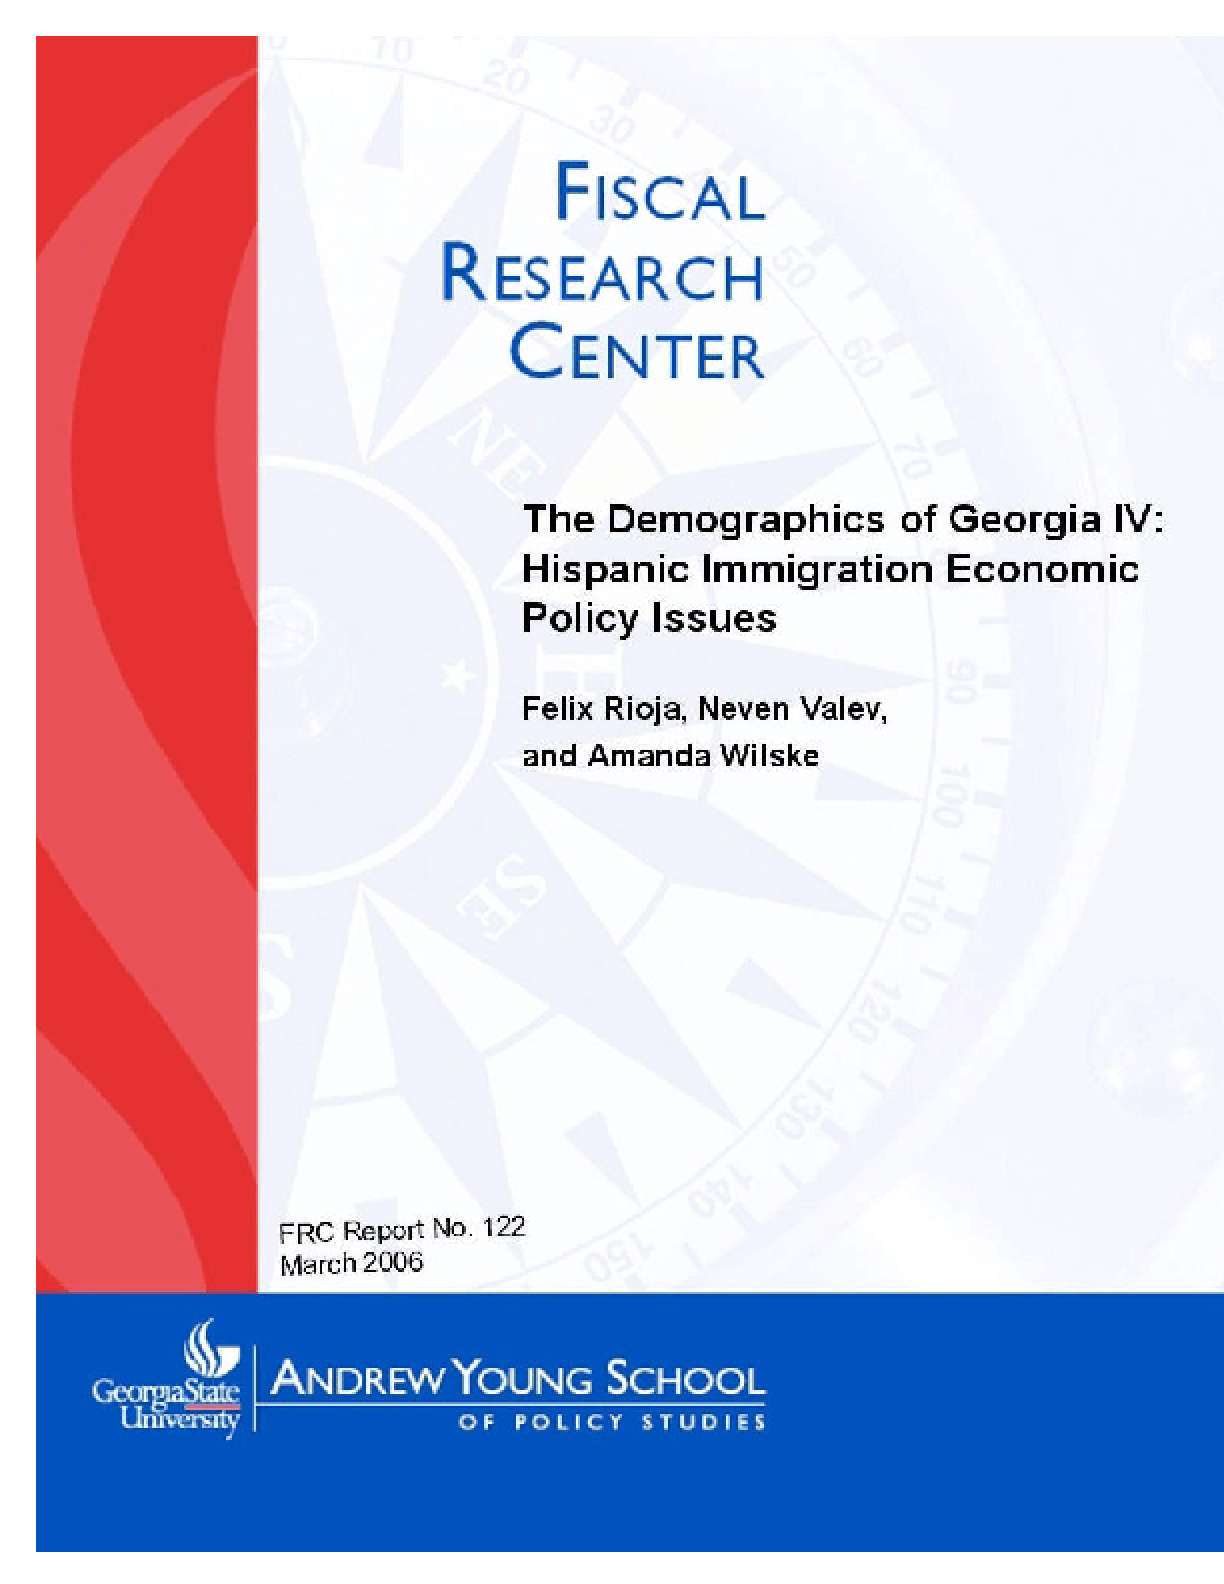 The Demographics of Georgia IV: Hispanic Immigration Economic Policy Issues